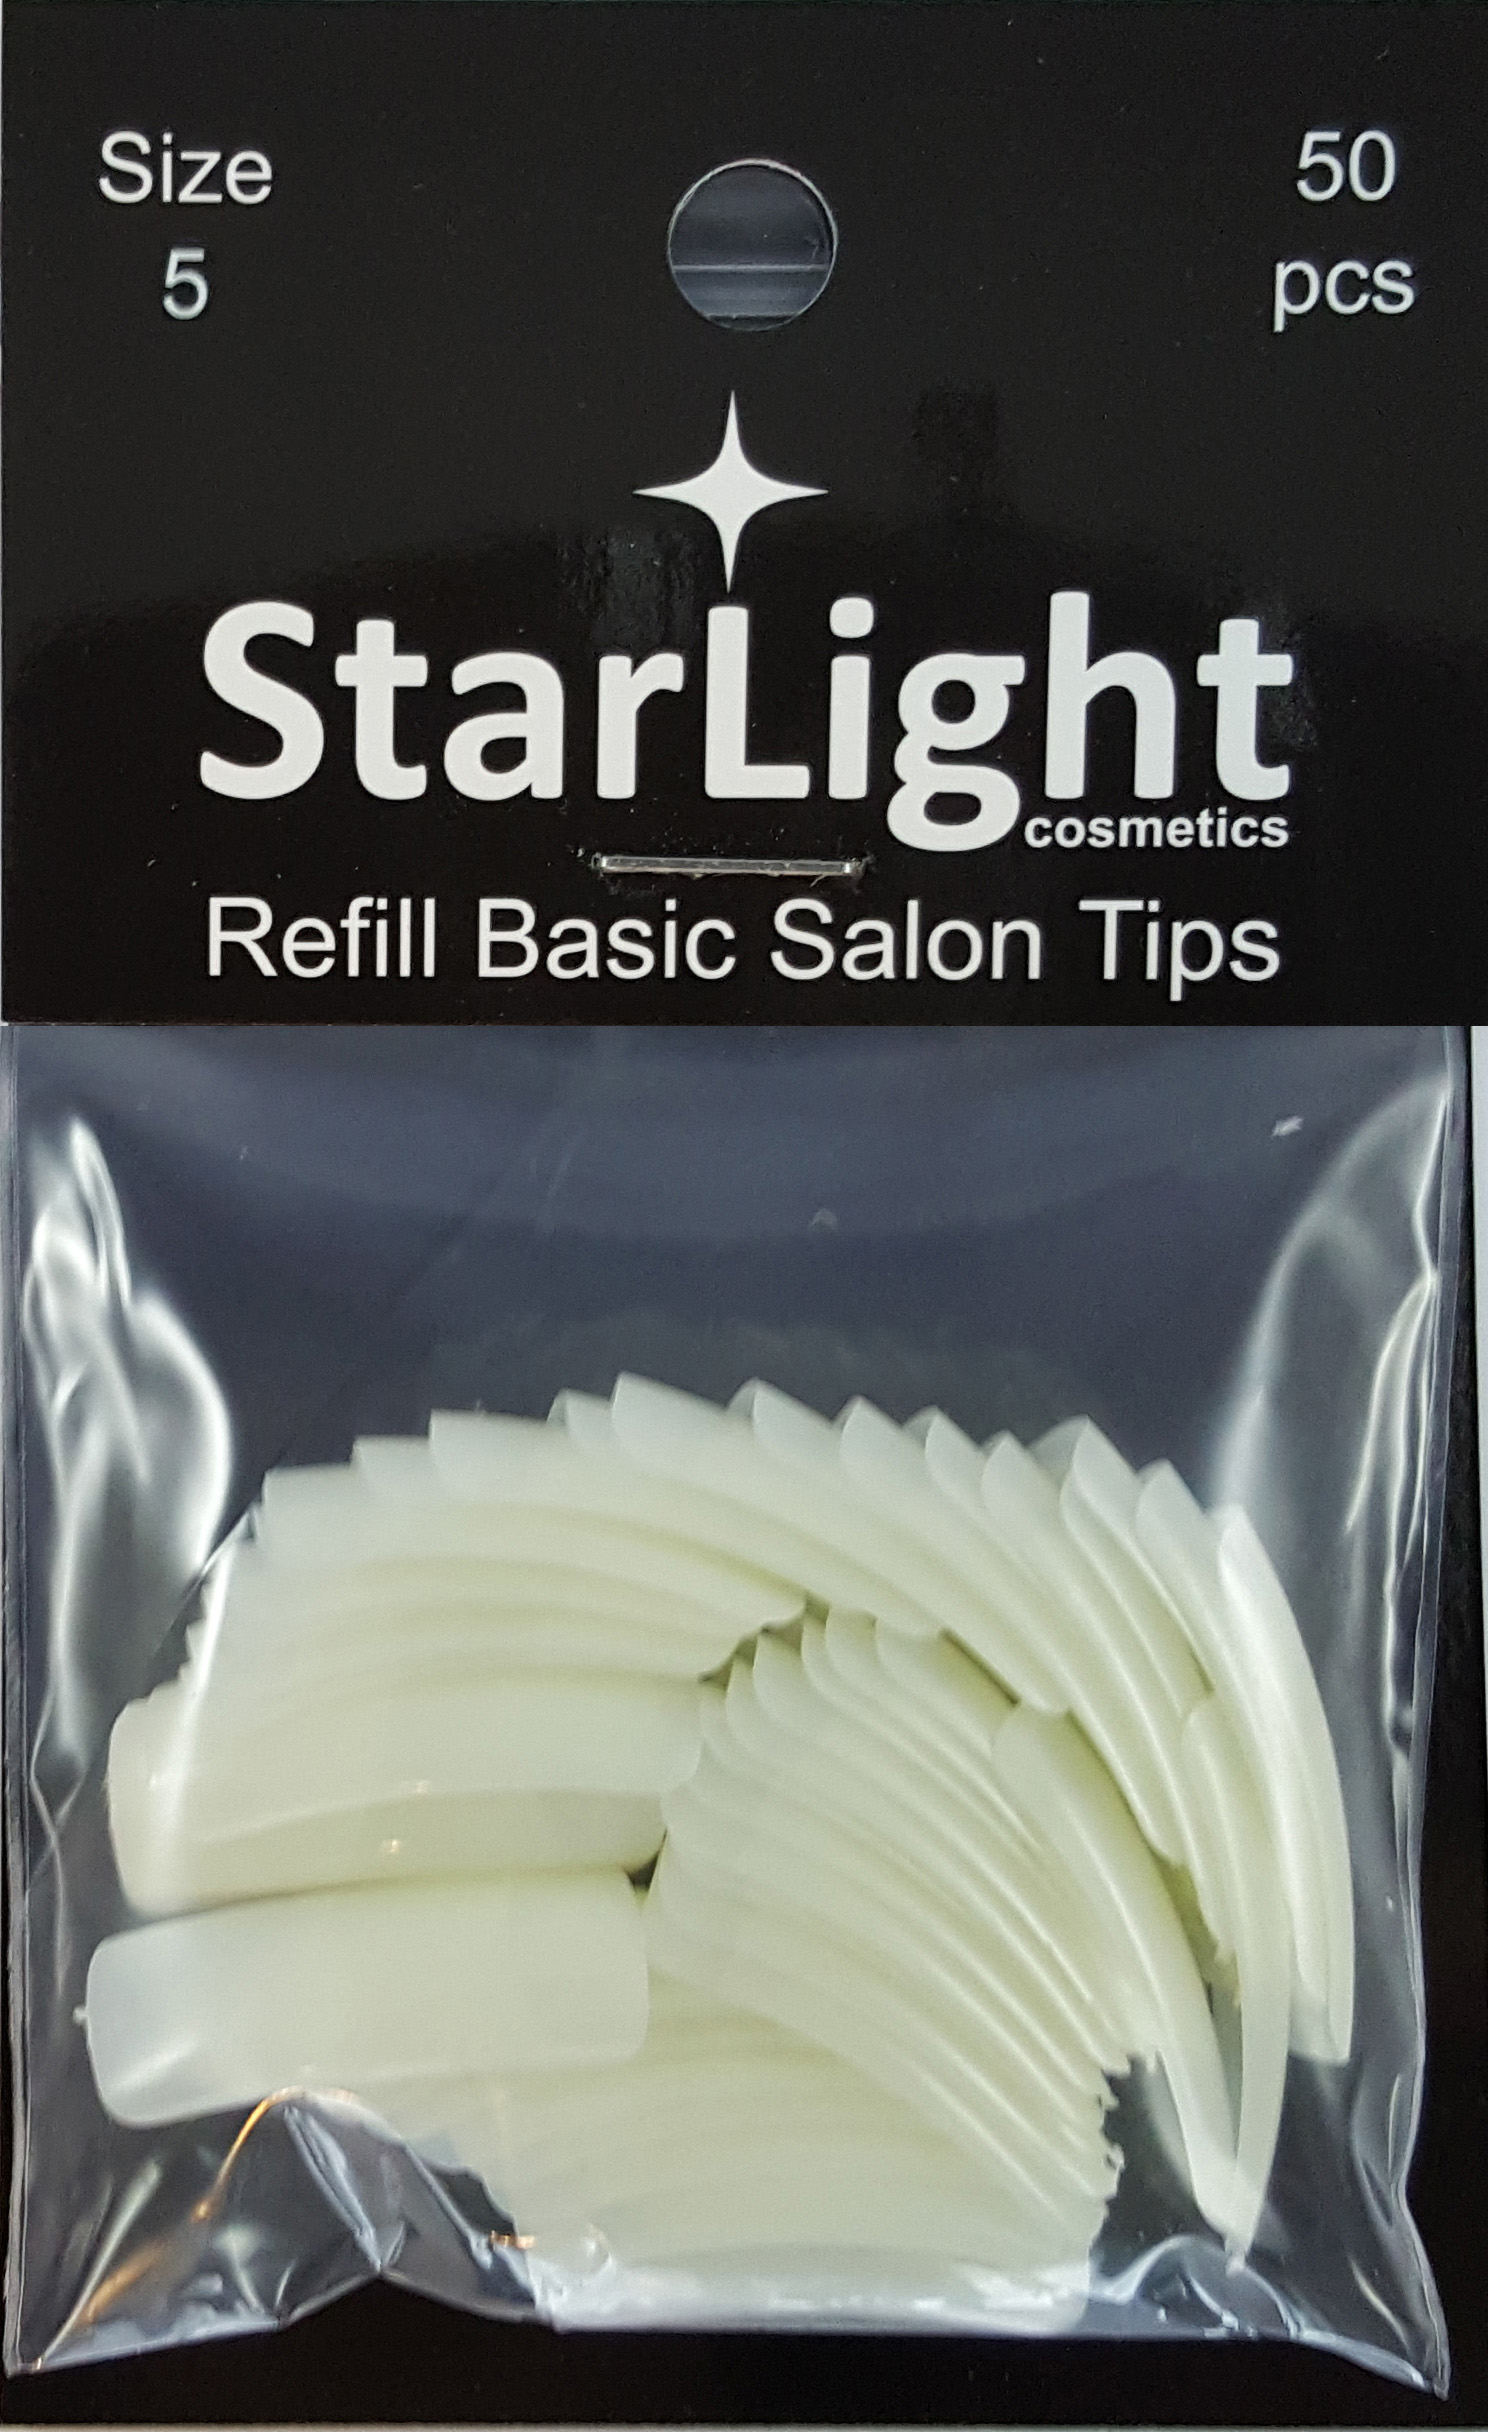 Naglar Basic Salon Tips Refill - 50 st Storlek 5